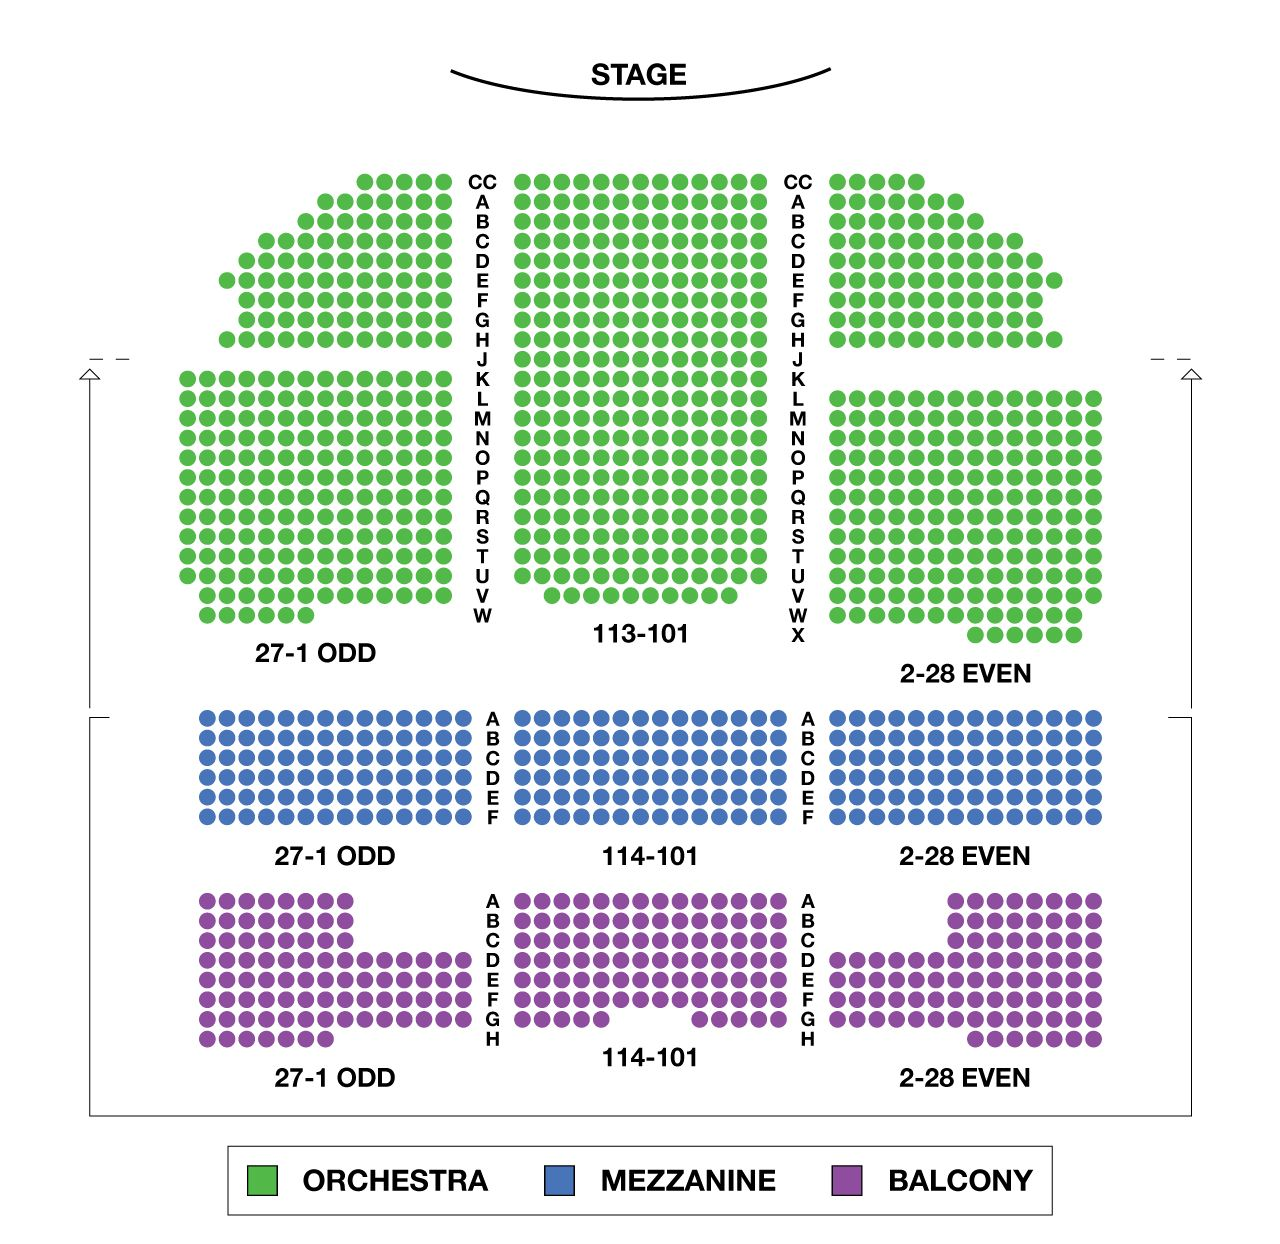 Richard rodgers theatre broadway seating chart large theater